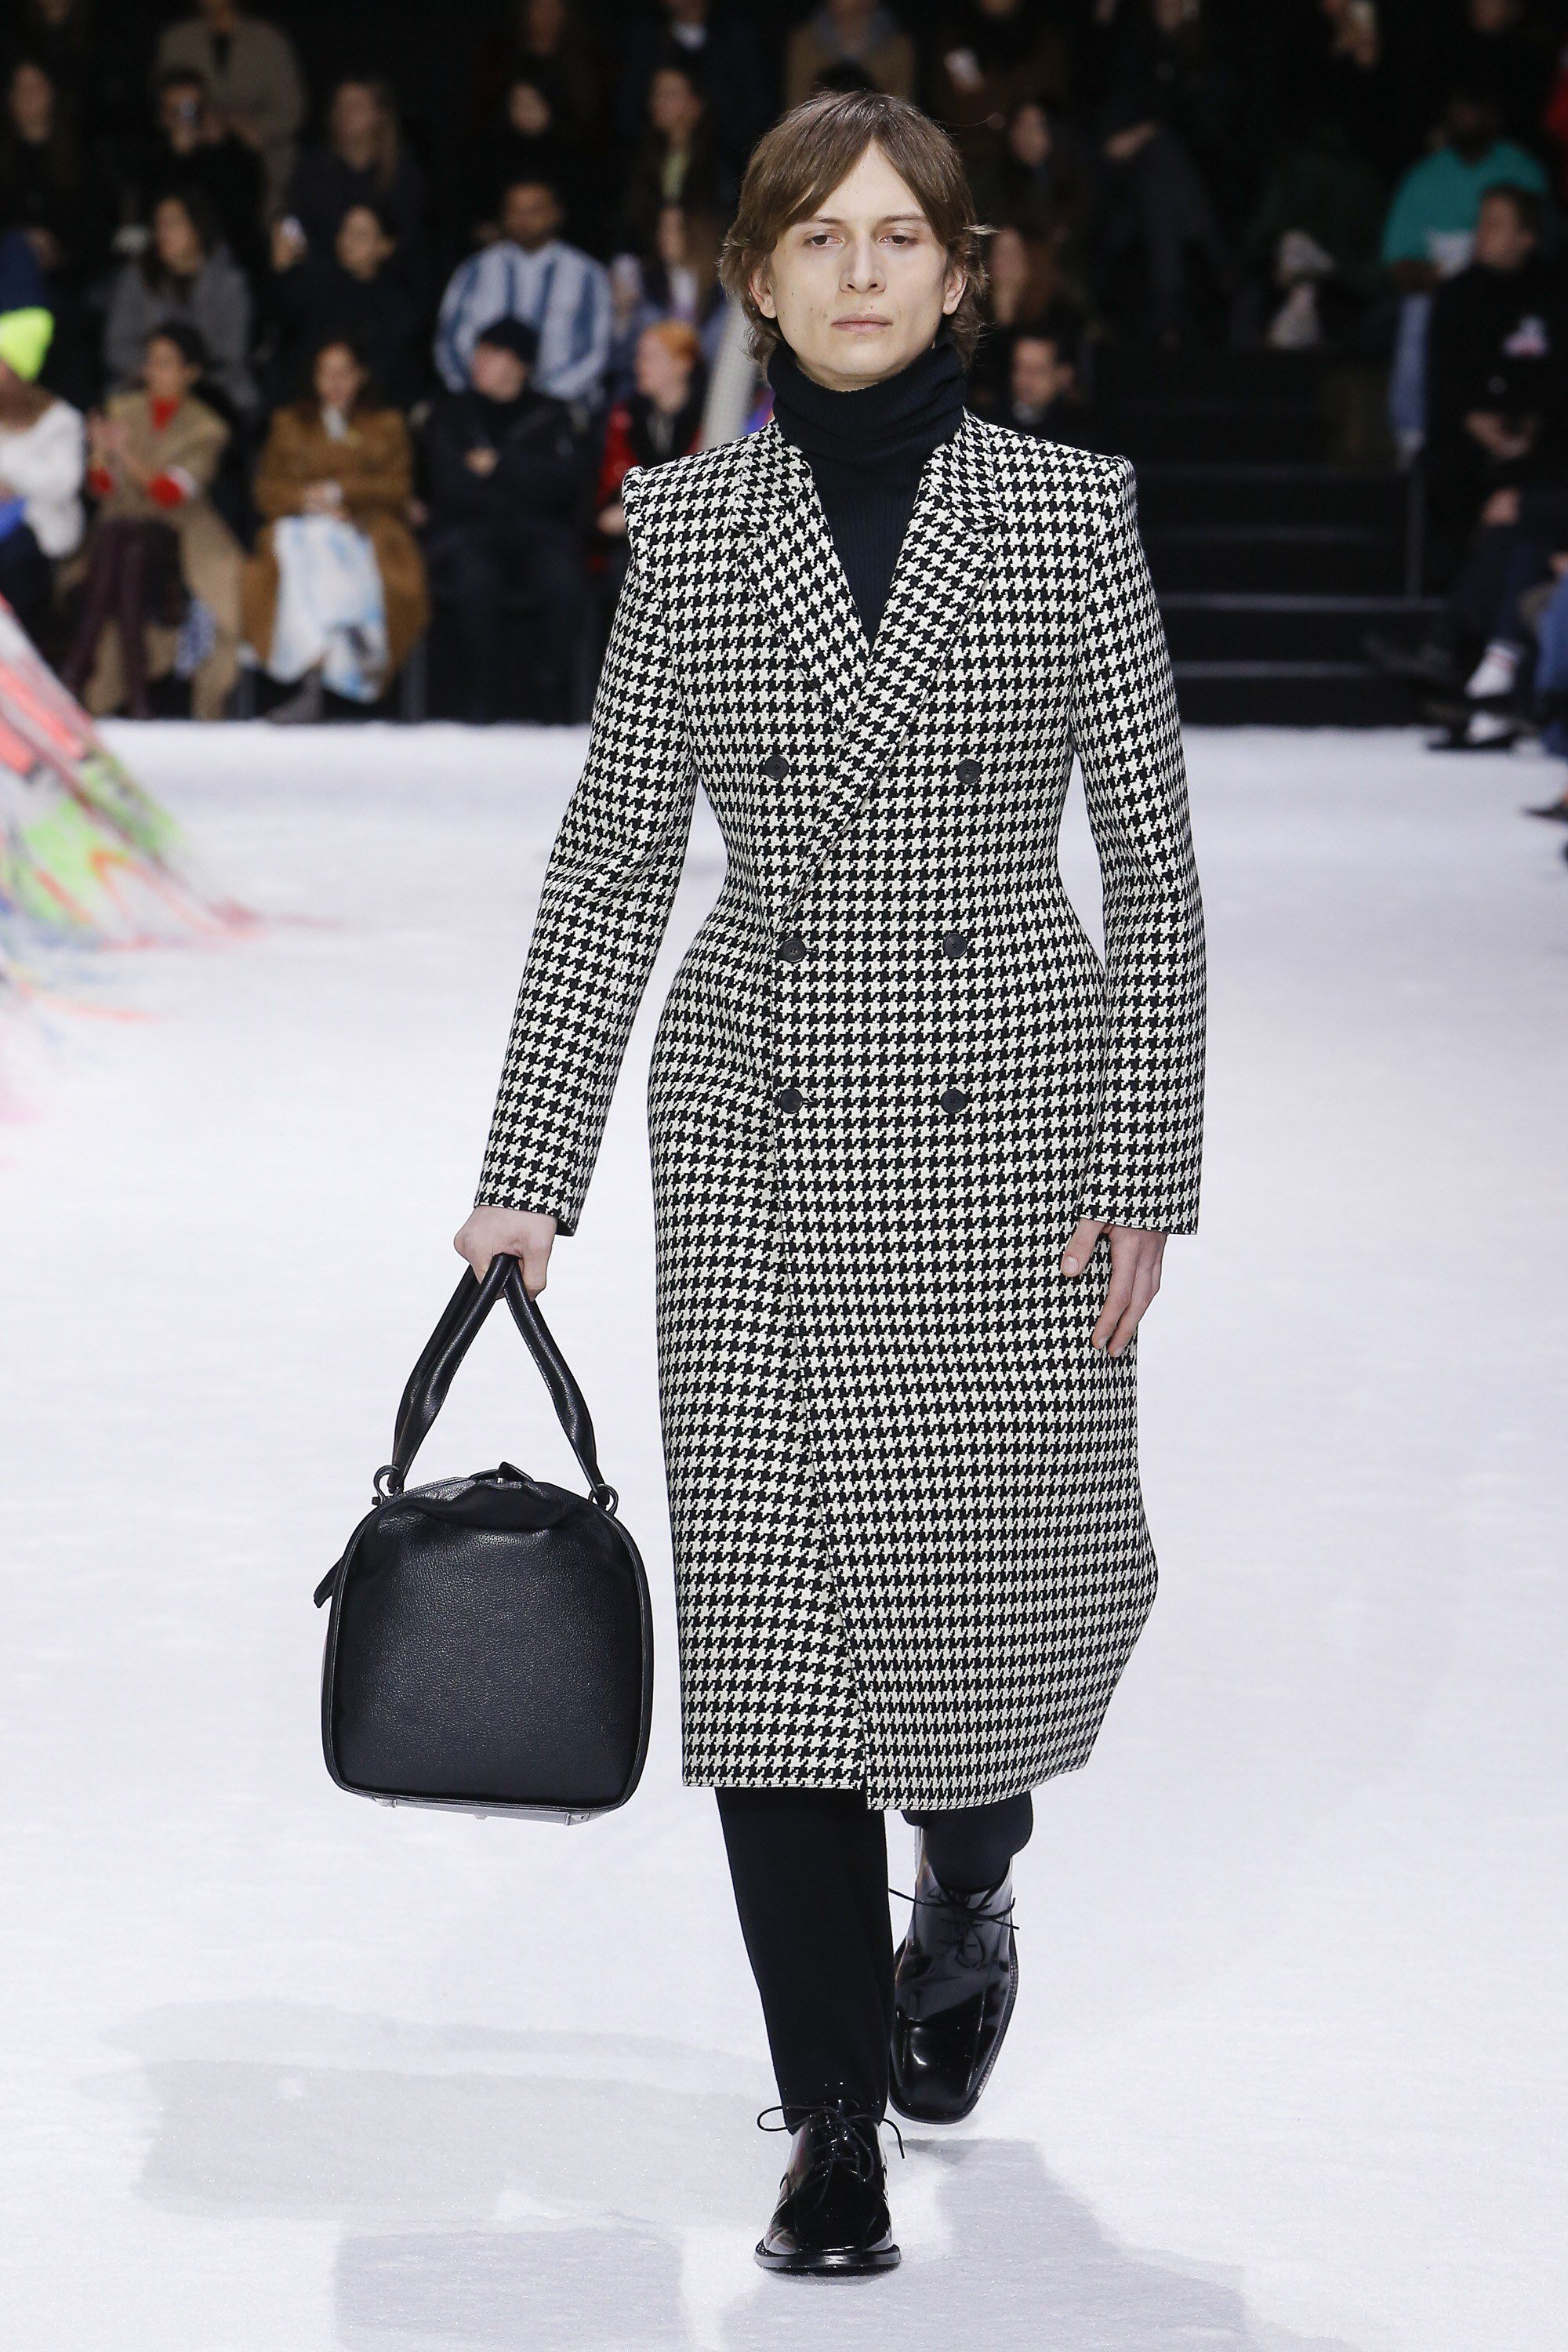 Balenciaga Fall 2018 Ready-to-Wear Fashion Show Collection  See the  complete Balenciaga Fall 2018 Ready-to-Wear collection. Look 16 6632d9c10